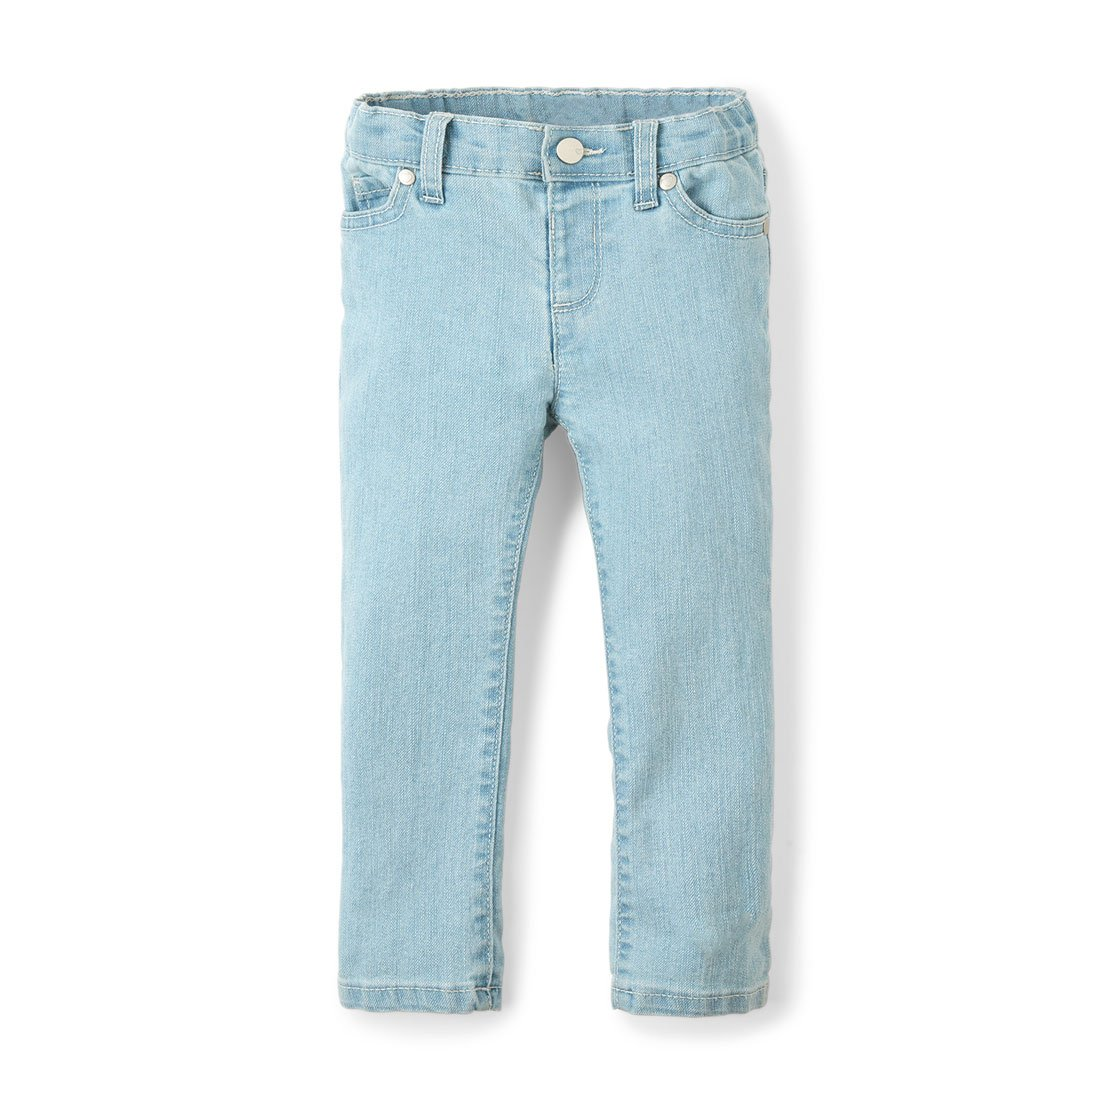 The Children's Place Girls' Toddler Skinny Jeans, SNWFLKWASH, 4T